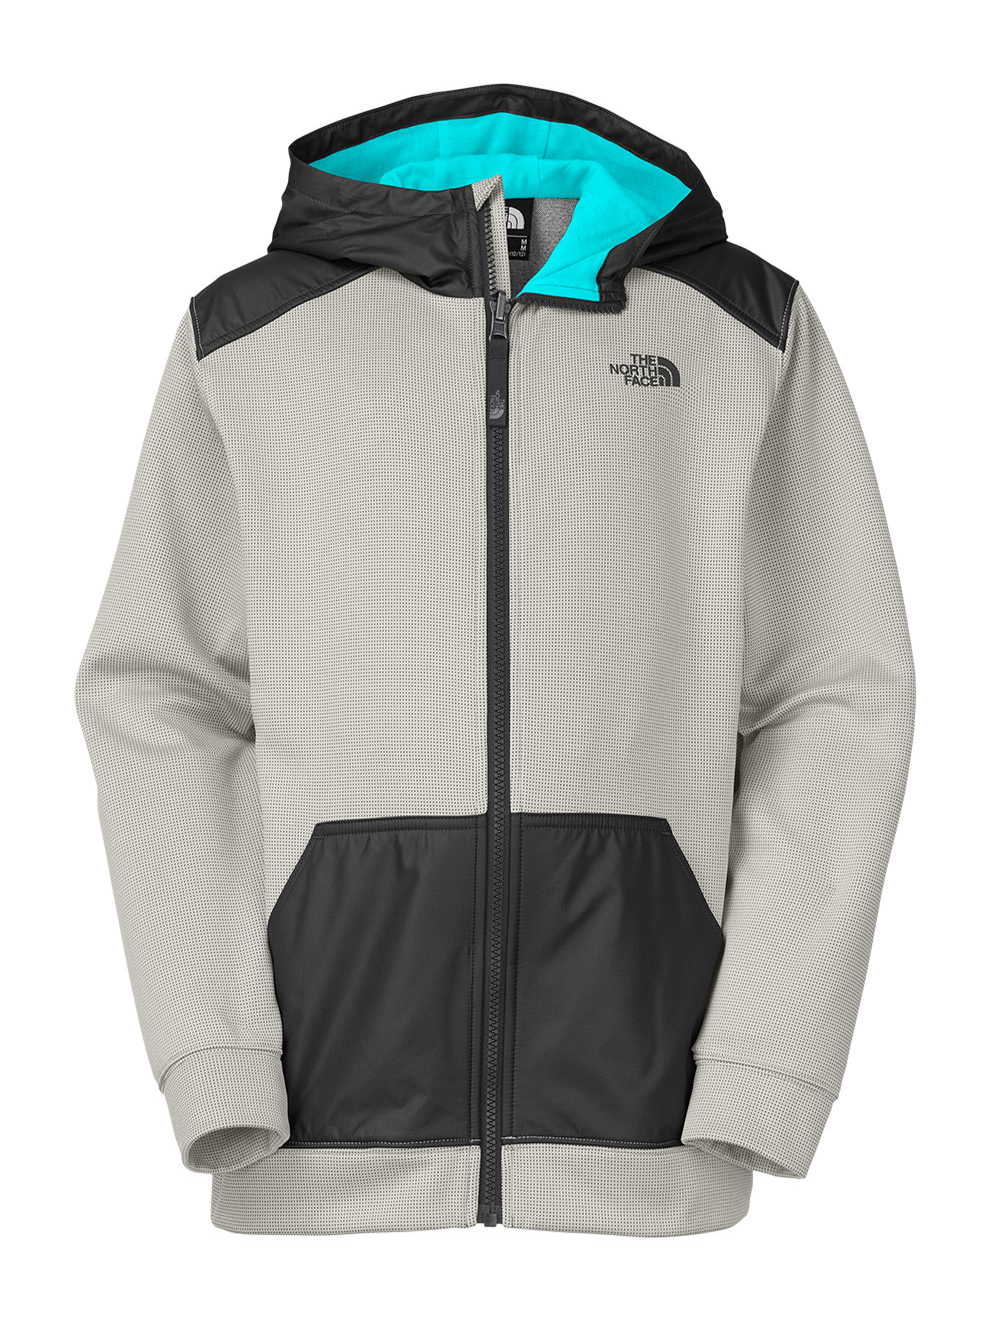 The North Face Big Boys' Ridge Track Hoodie (Sizes 8 - 20) - high rise gray, s/7-8